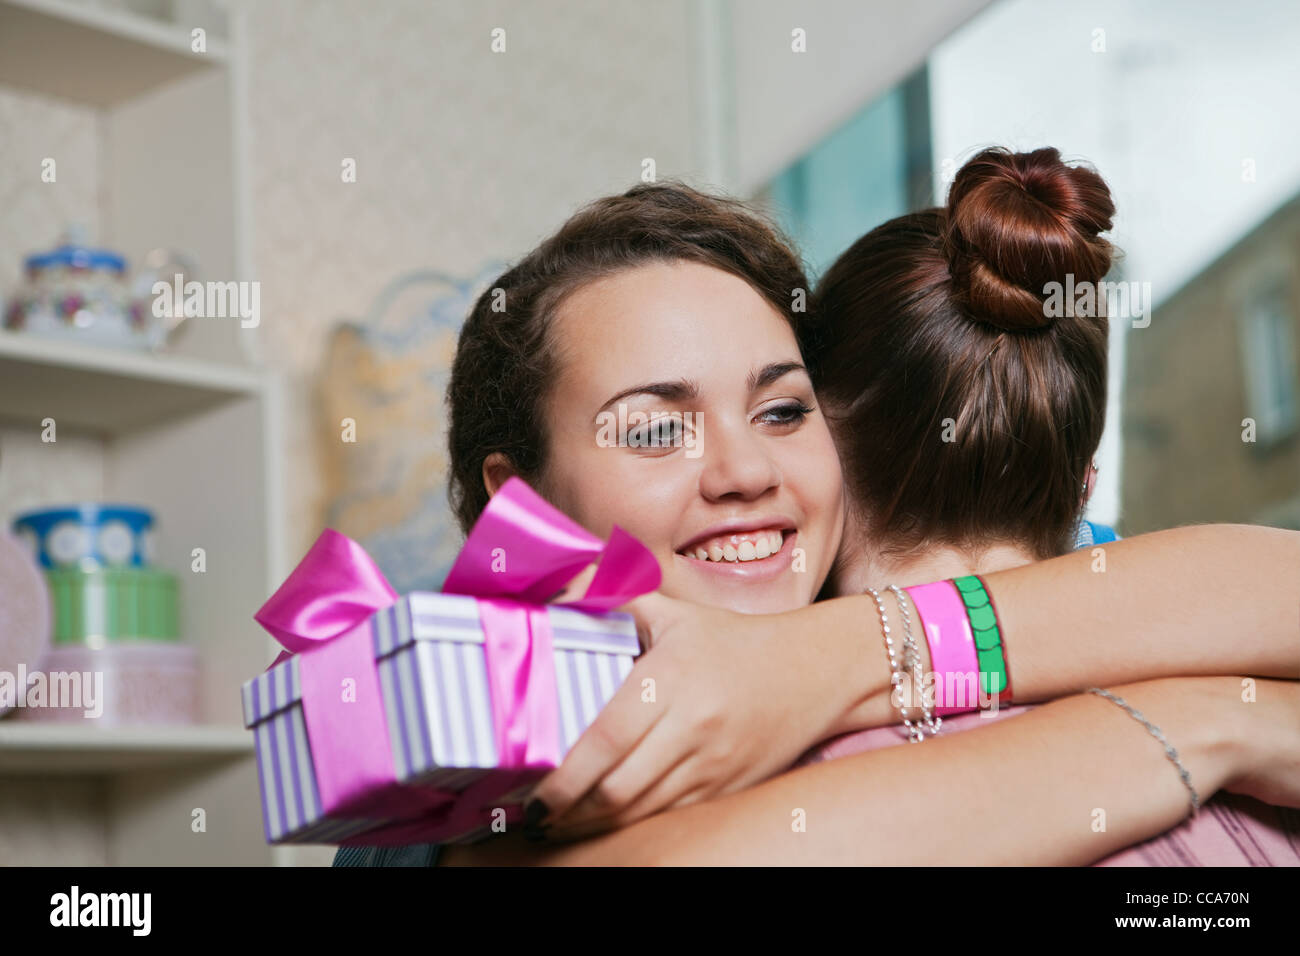 Young women holding birthday gift and embracing - Stock Image